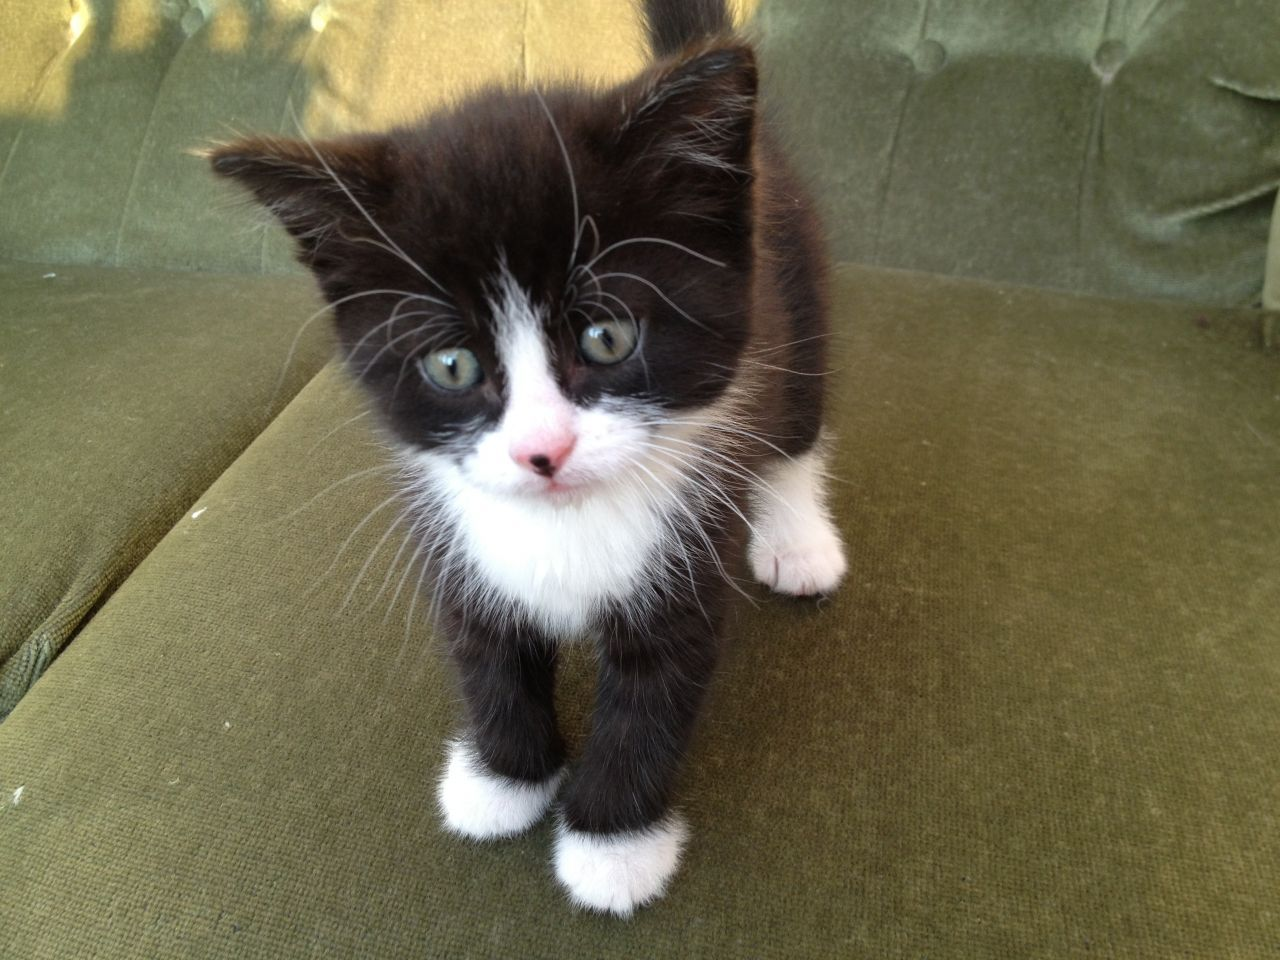 Pin By Erica Labarbera On Animals Kittens Cutest Baby Kitten Pictures Cutest Kittens Ever